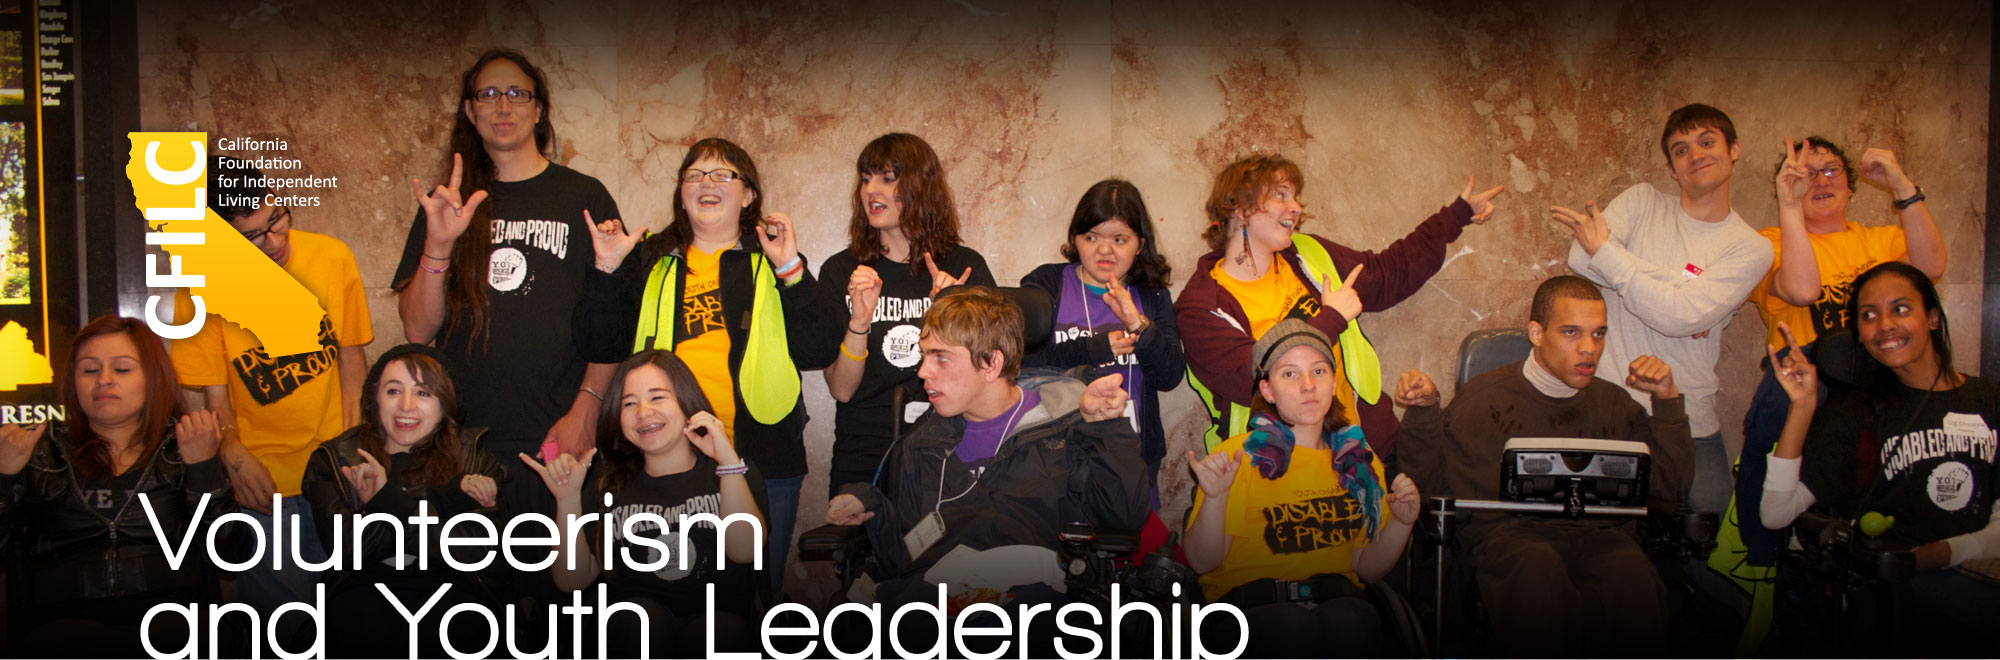 Banner of YO! Volunteerism and Youth Leadership, with a group of youth gantered inside the Capitol during the 2011 Capitol Action Day.